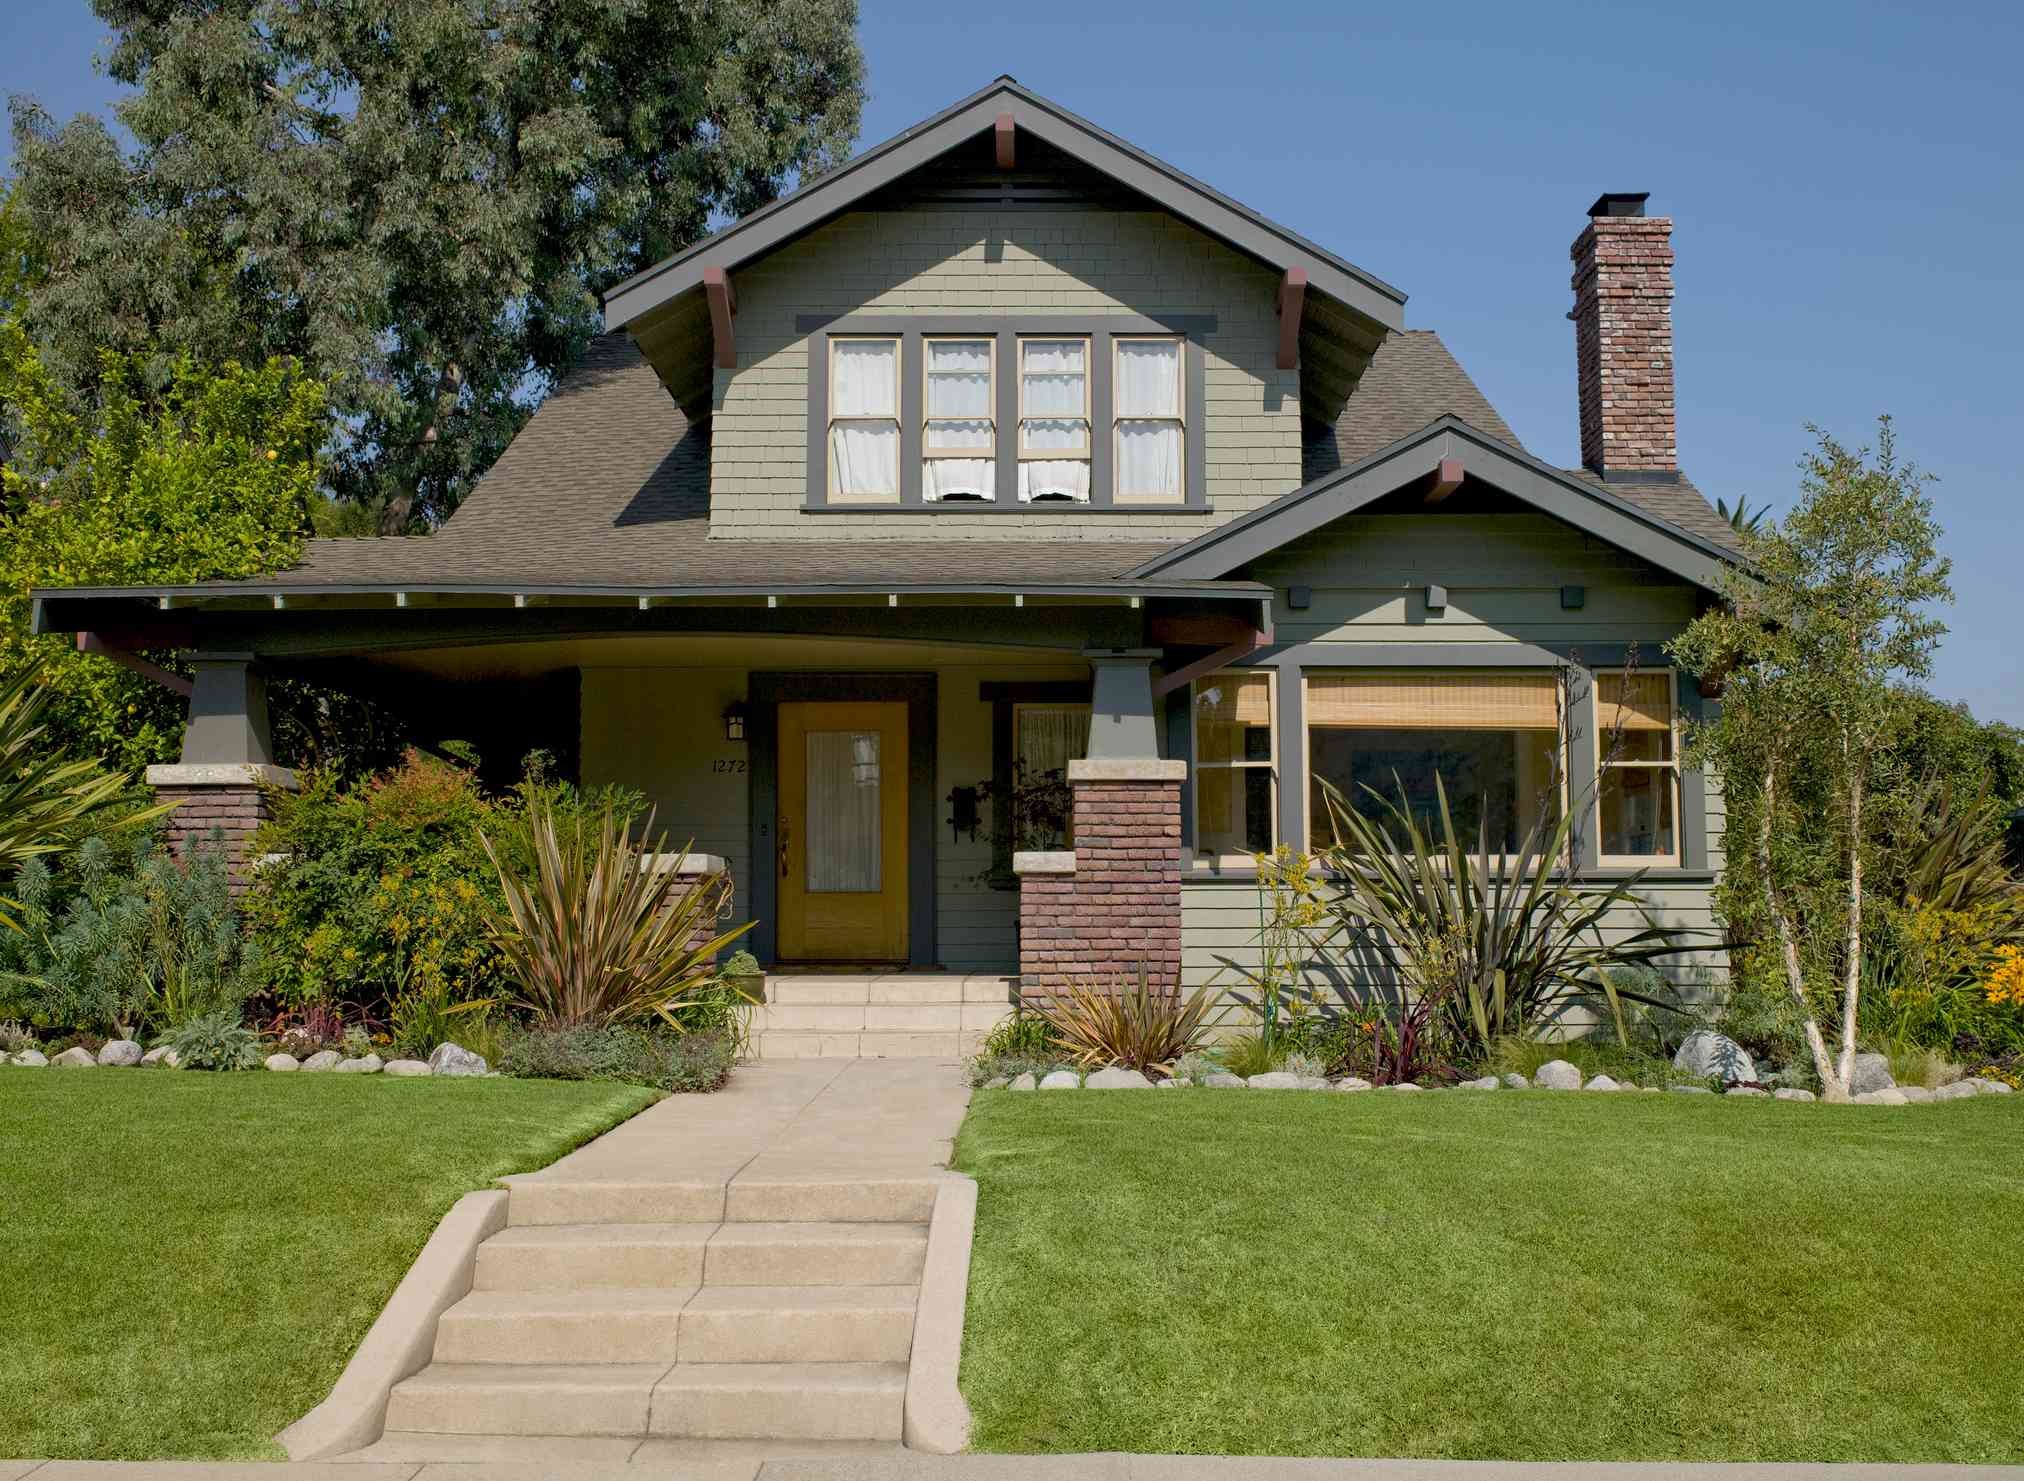 what makes a house craftsman style